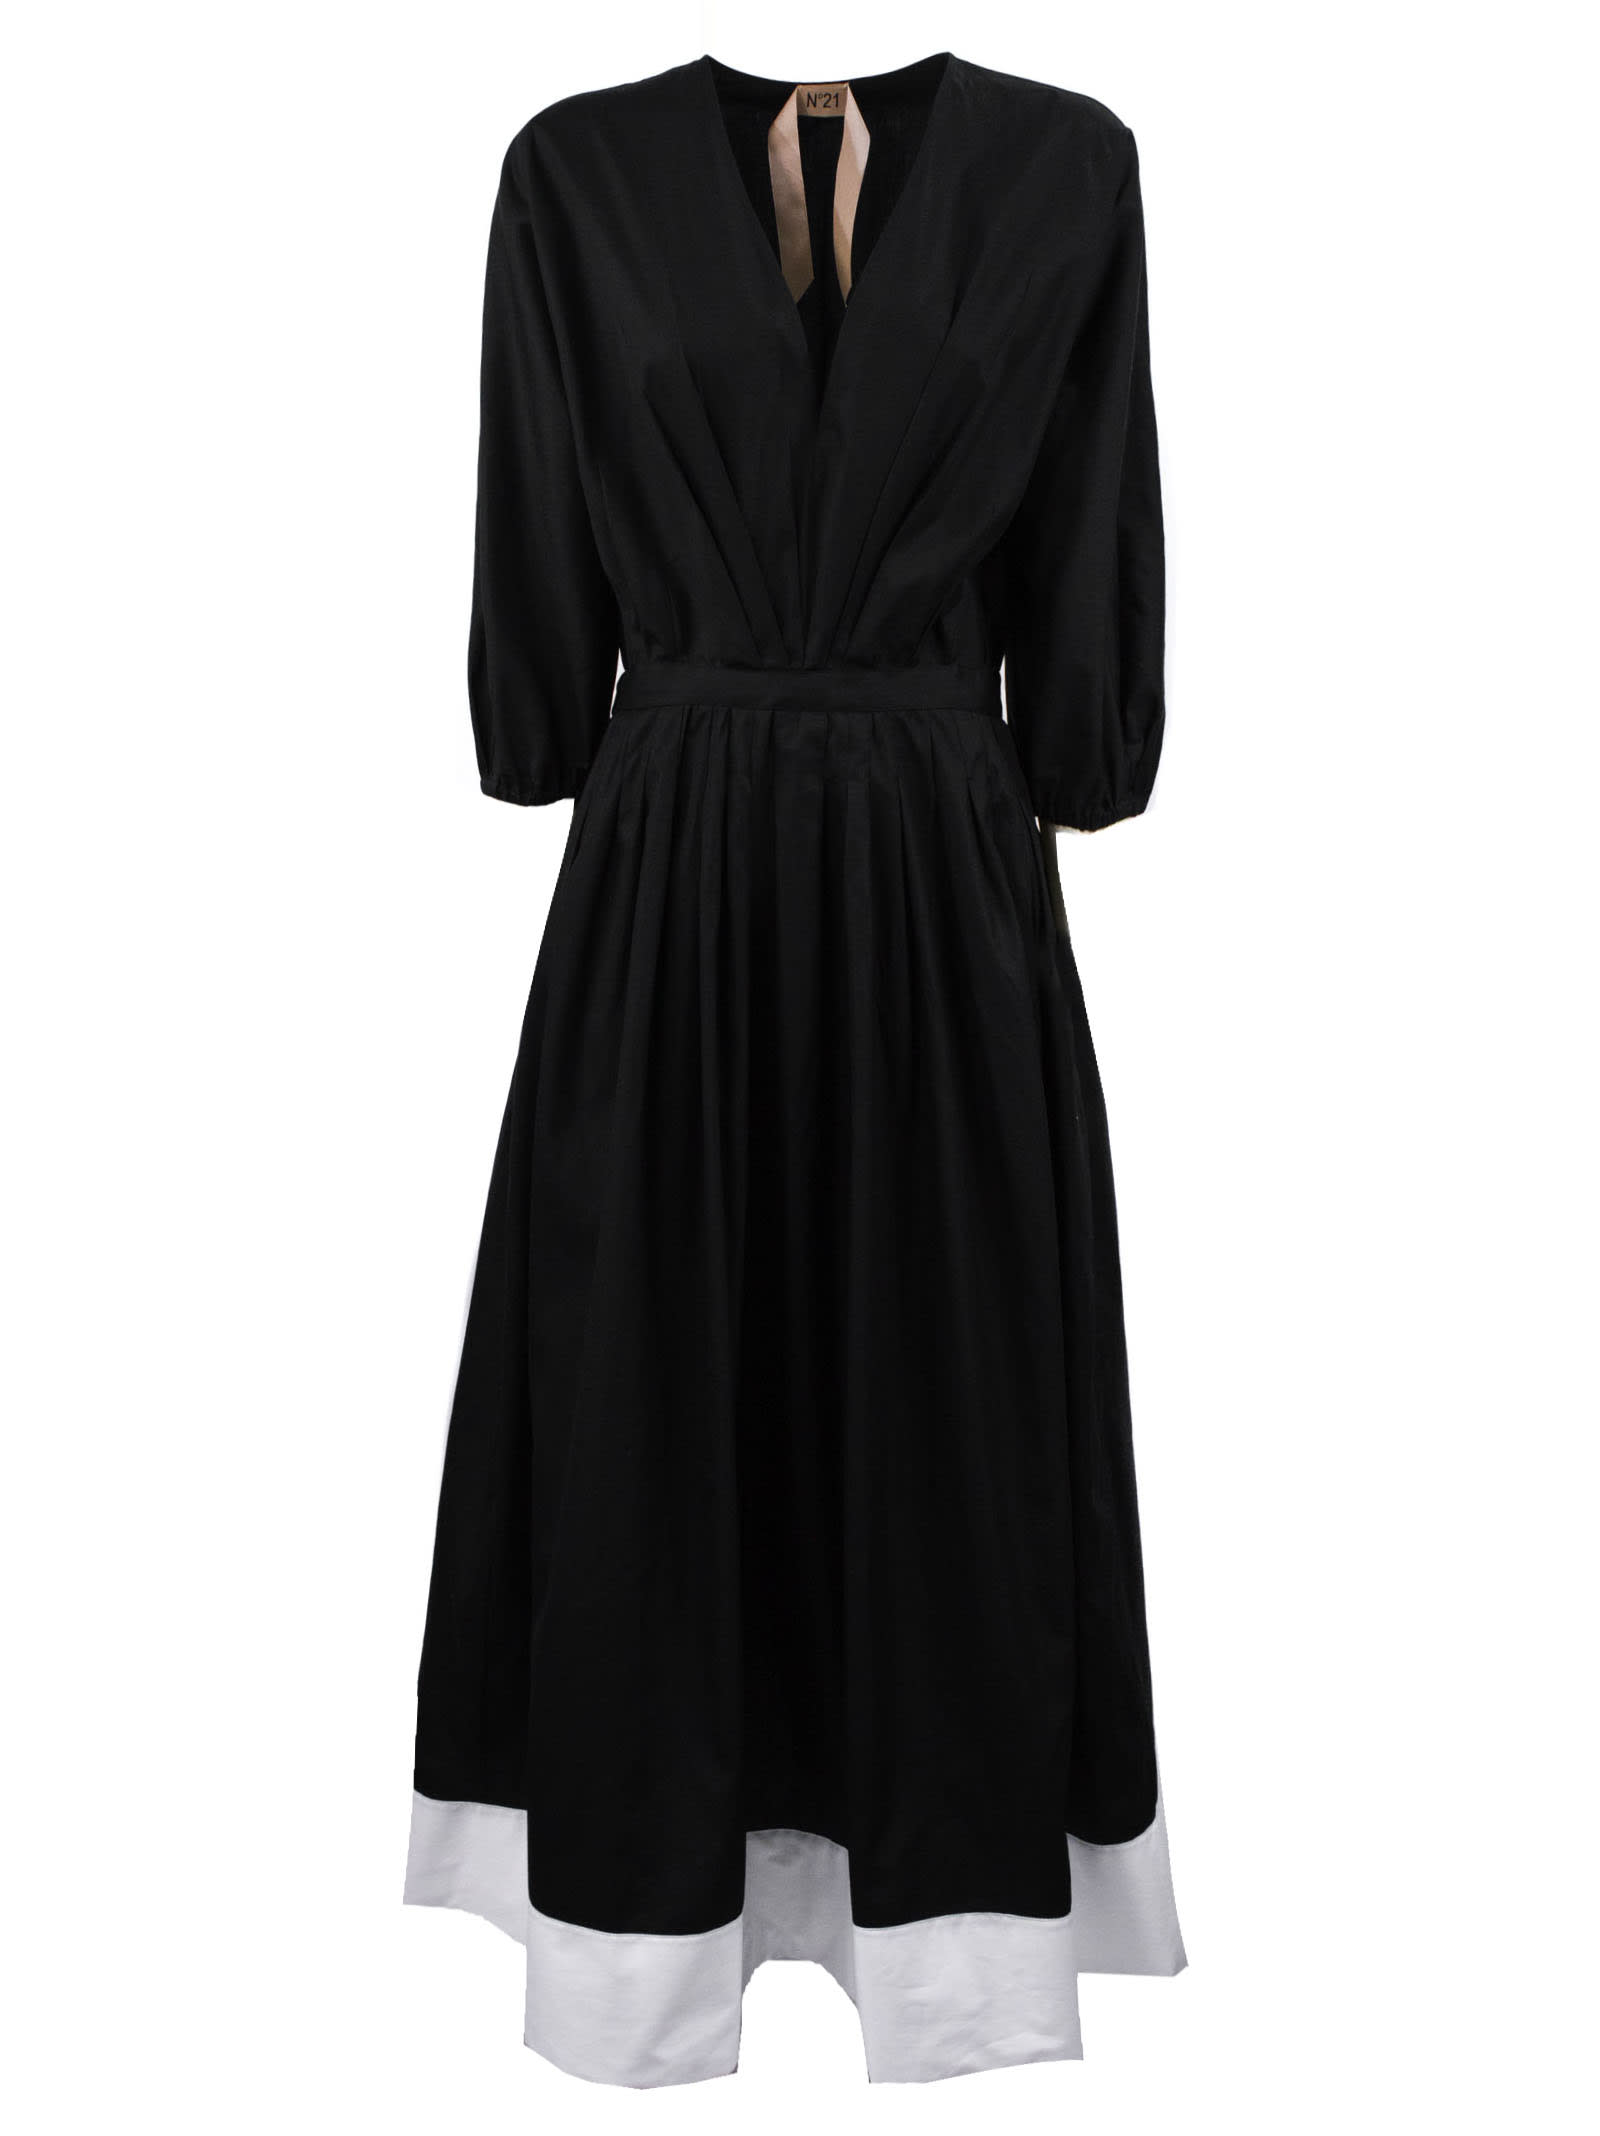 Buy N.21 Black Midi Dress online, shop N.21 with free shipping